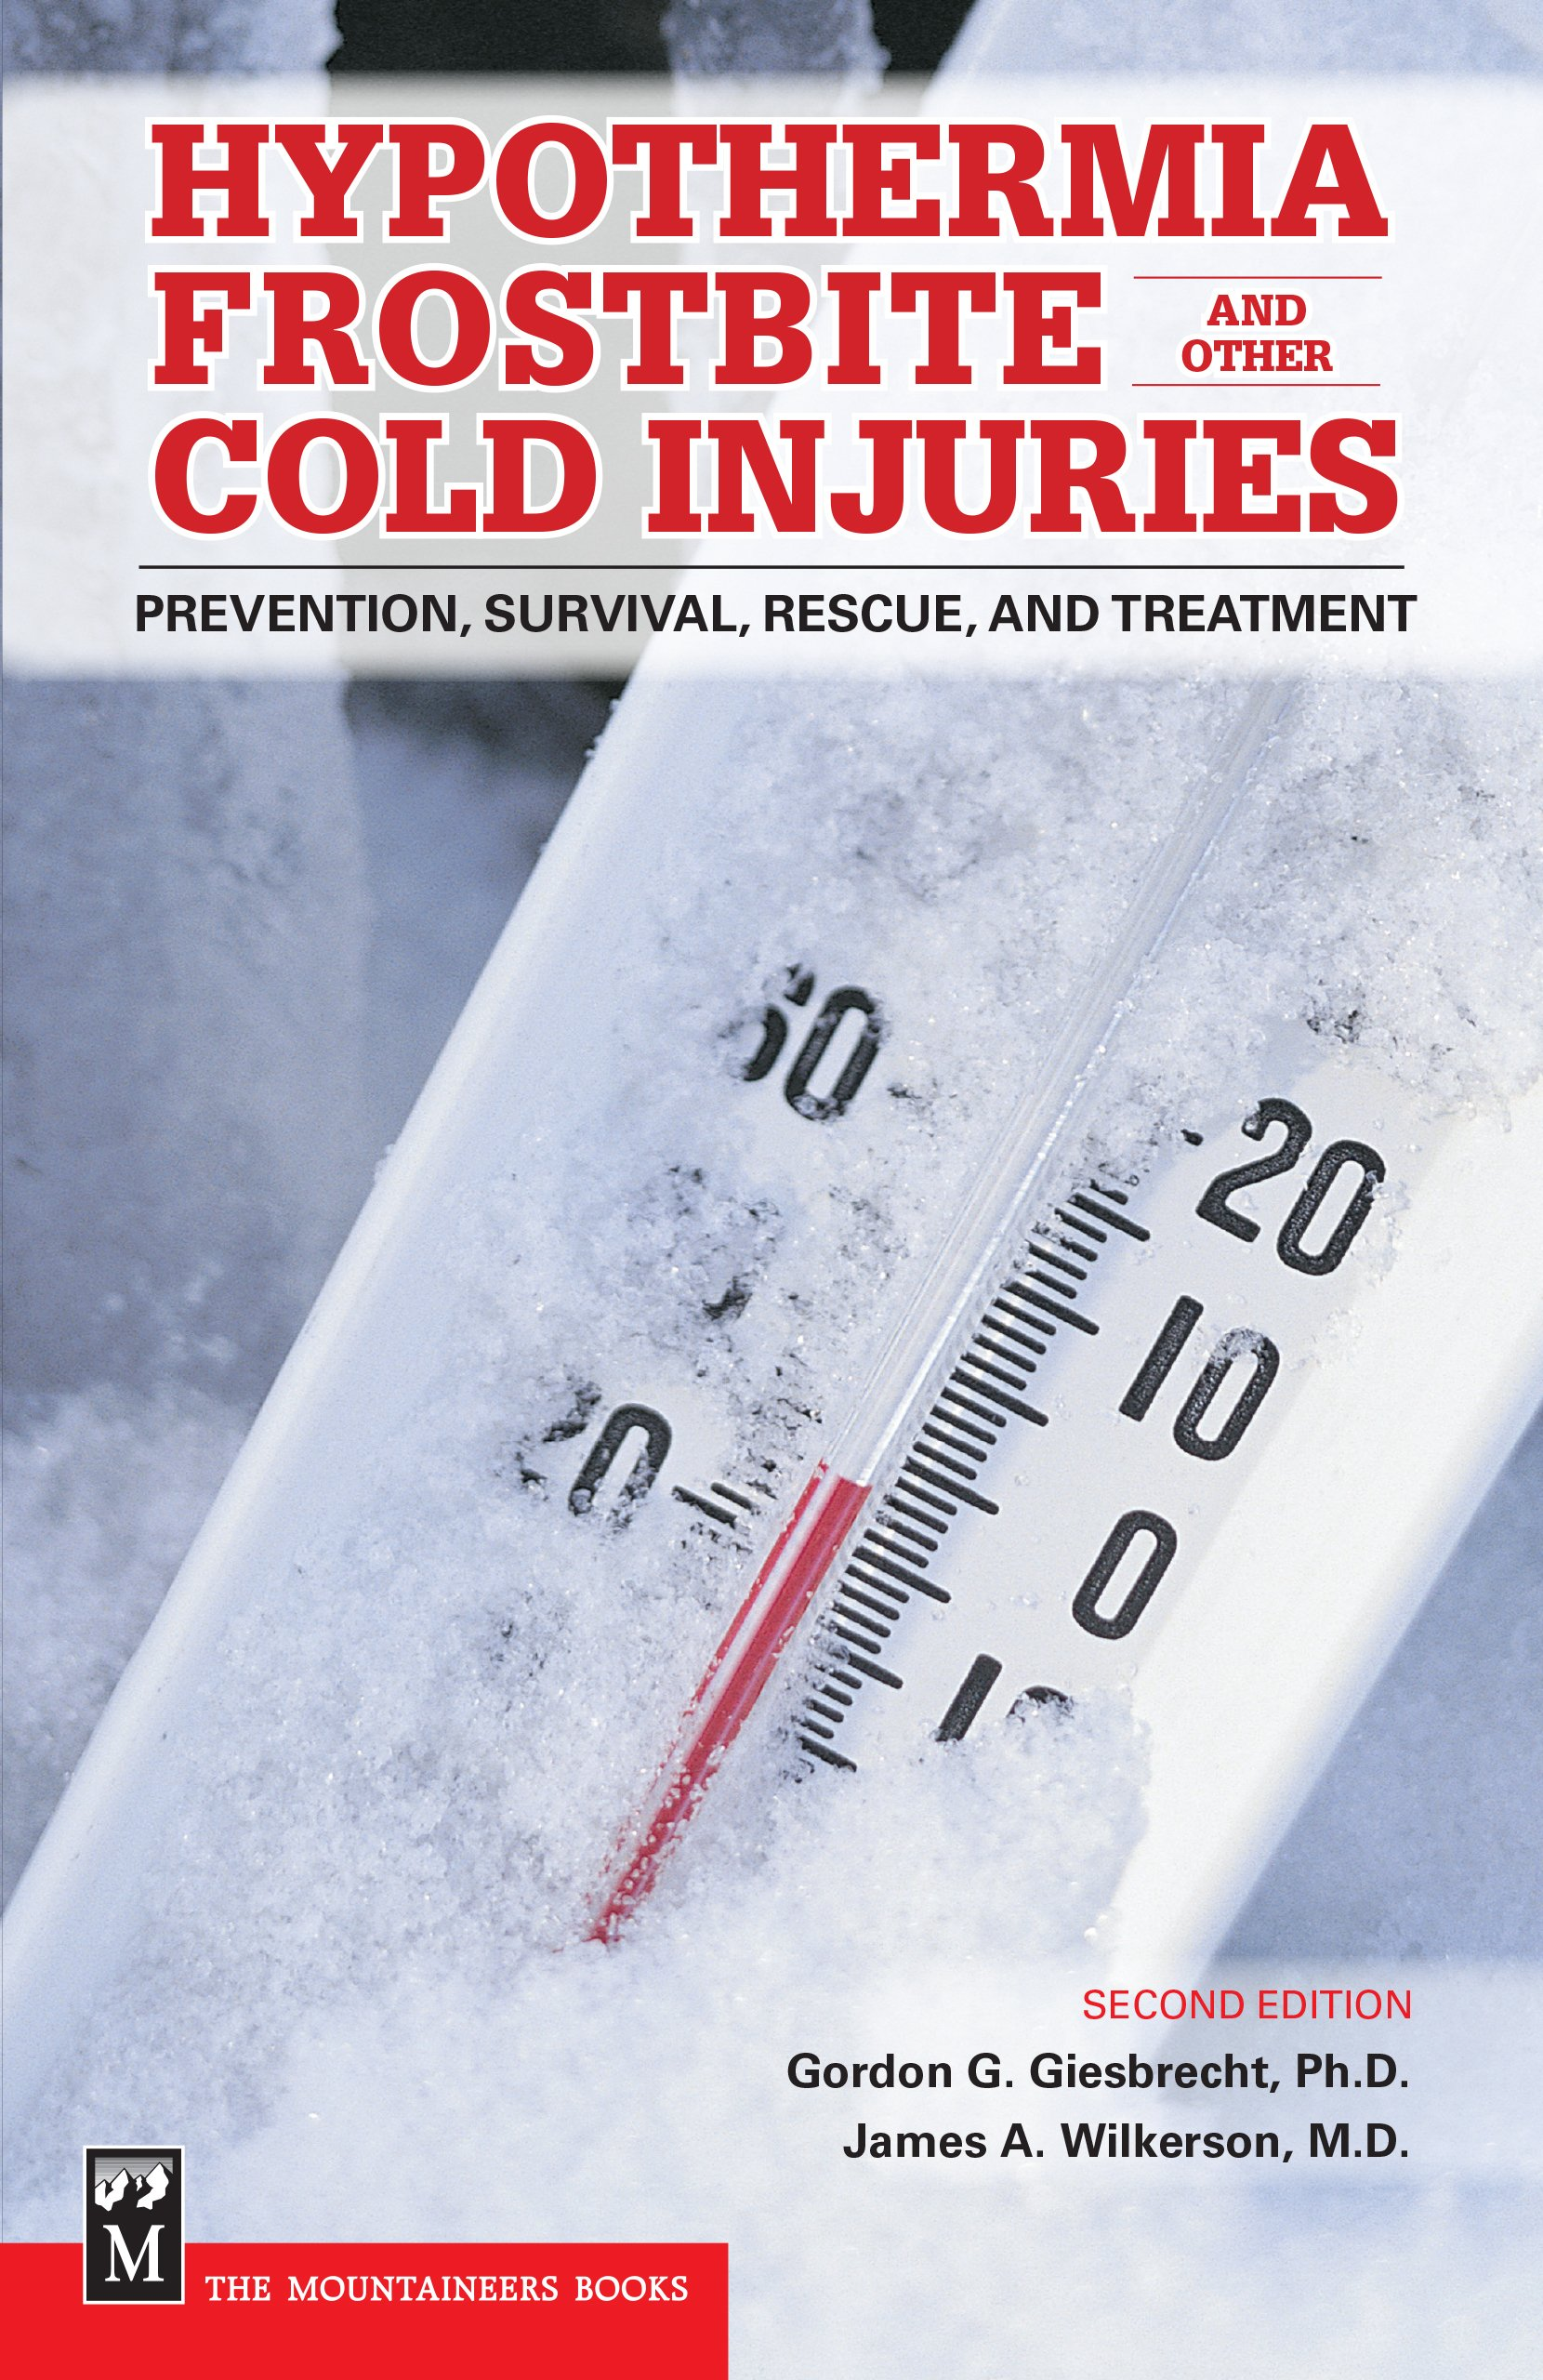 Hypothermia, Frostbite, and Other Cold Injuries: Prevention, Survival, Rescue, and Treatment